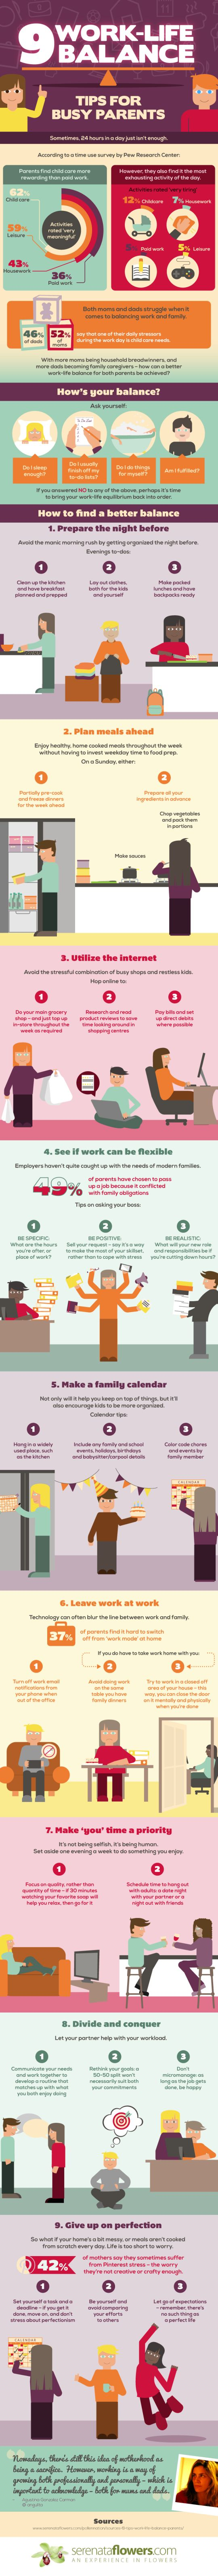 9 Work-Life Balance Tips for Busy Mums